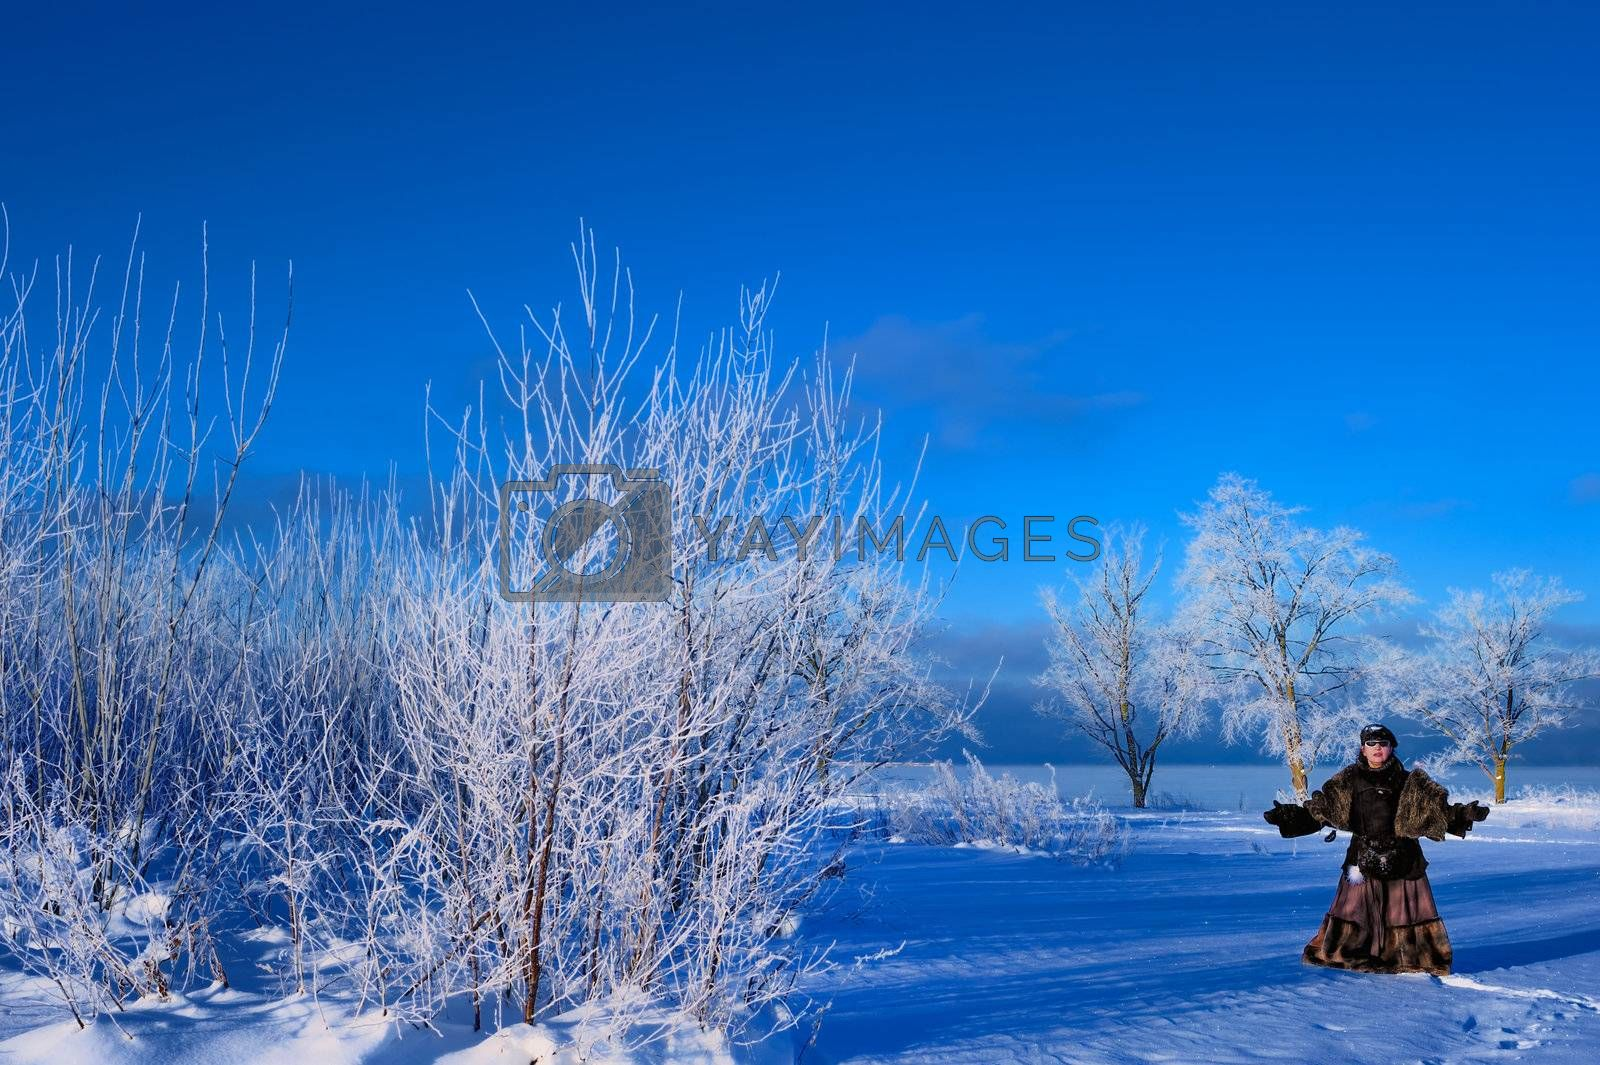 A woman stands in the middle of a snowy field